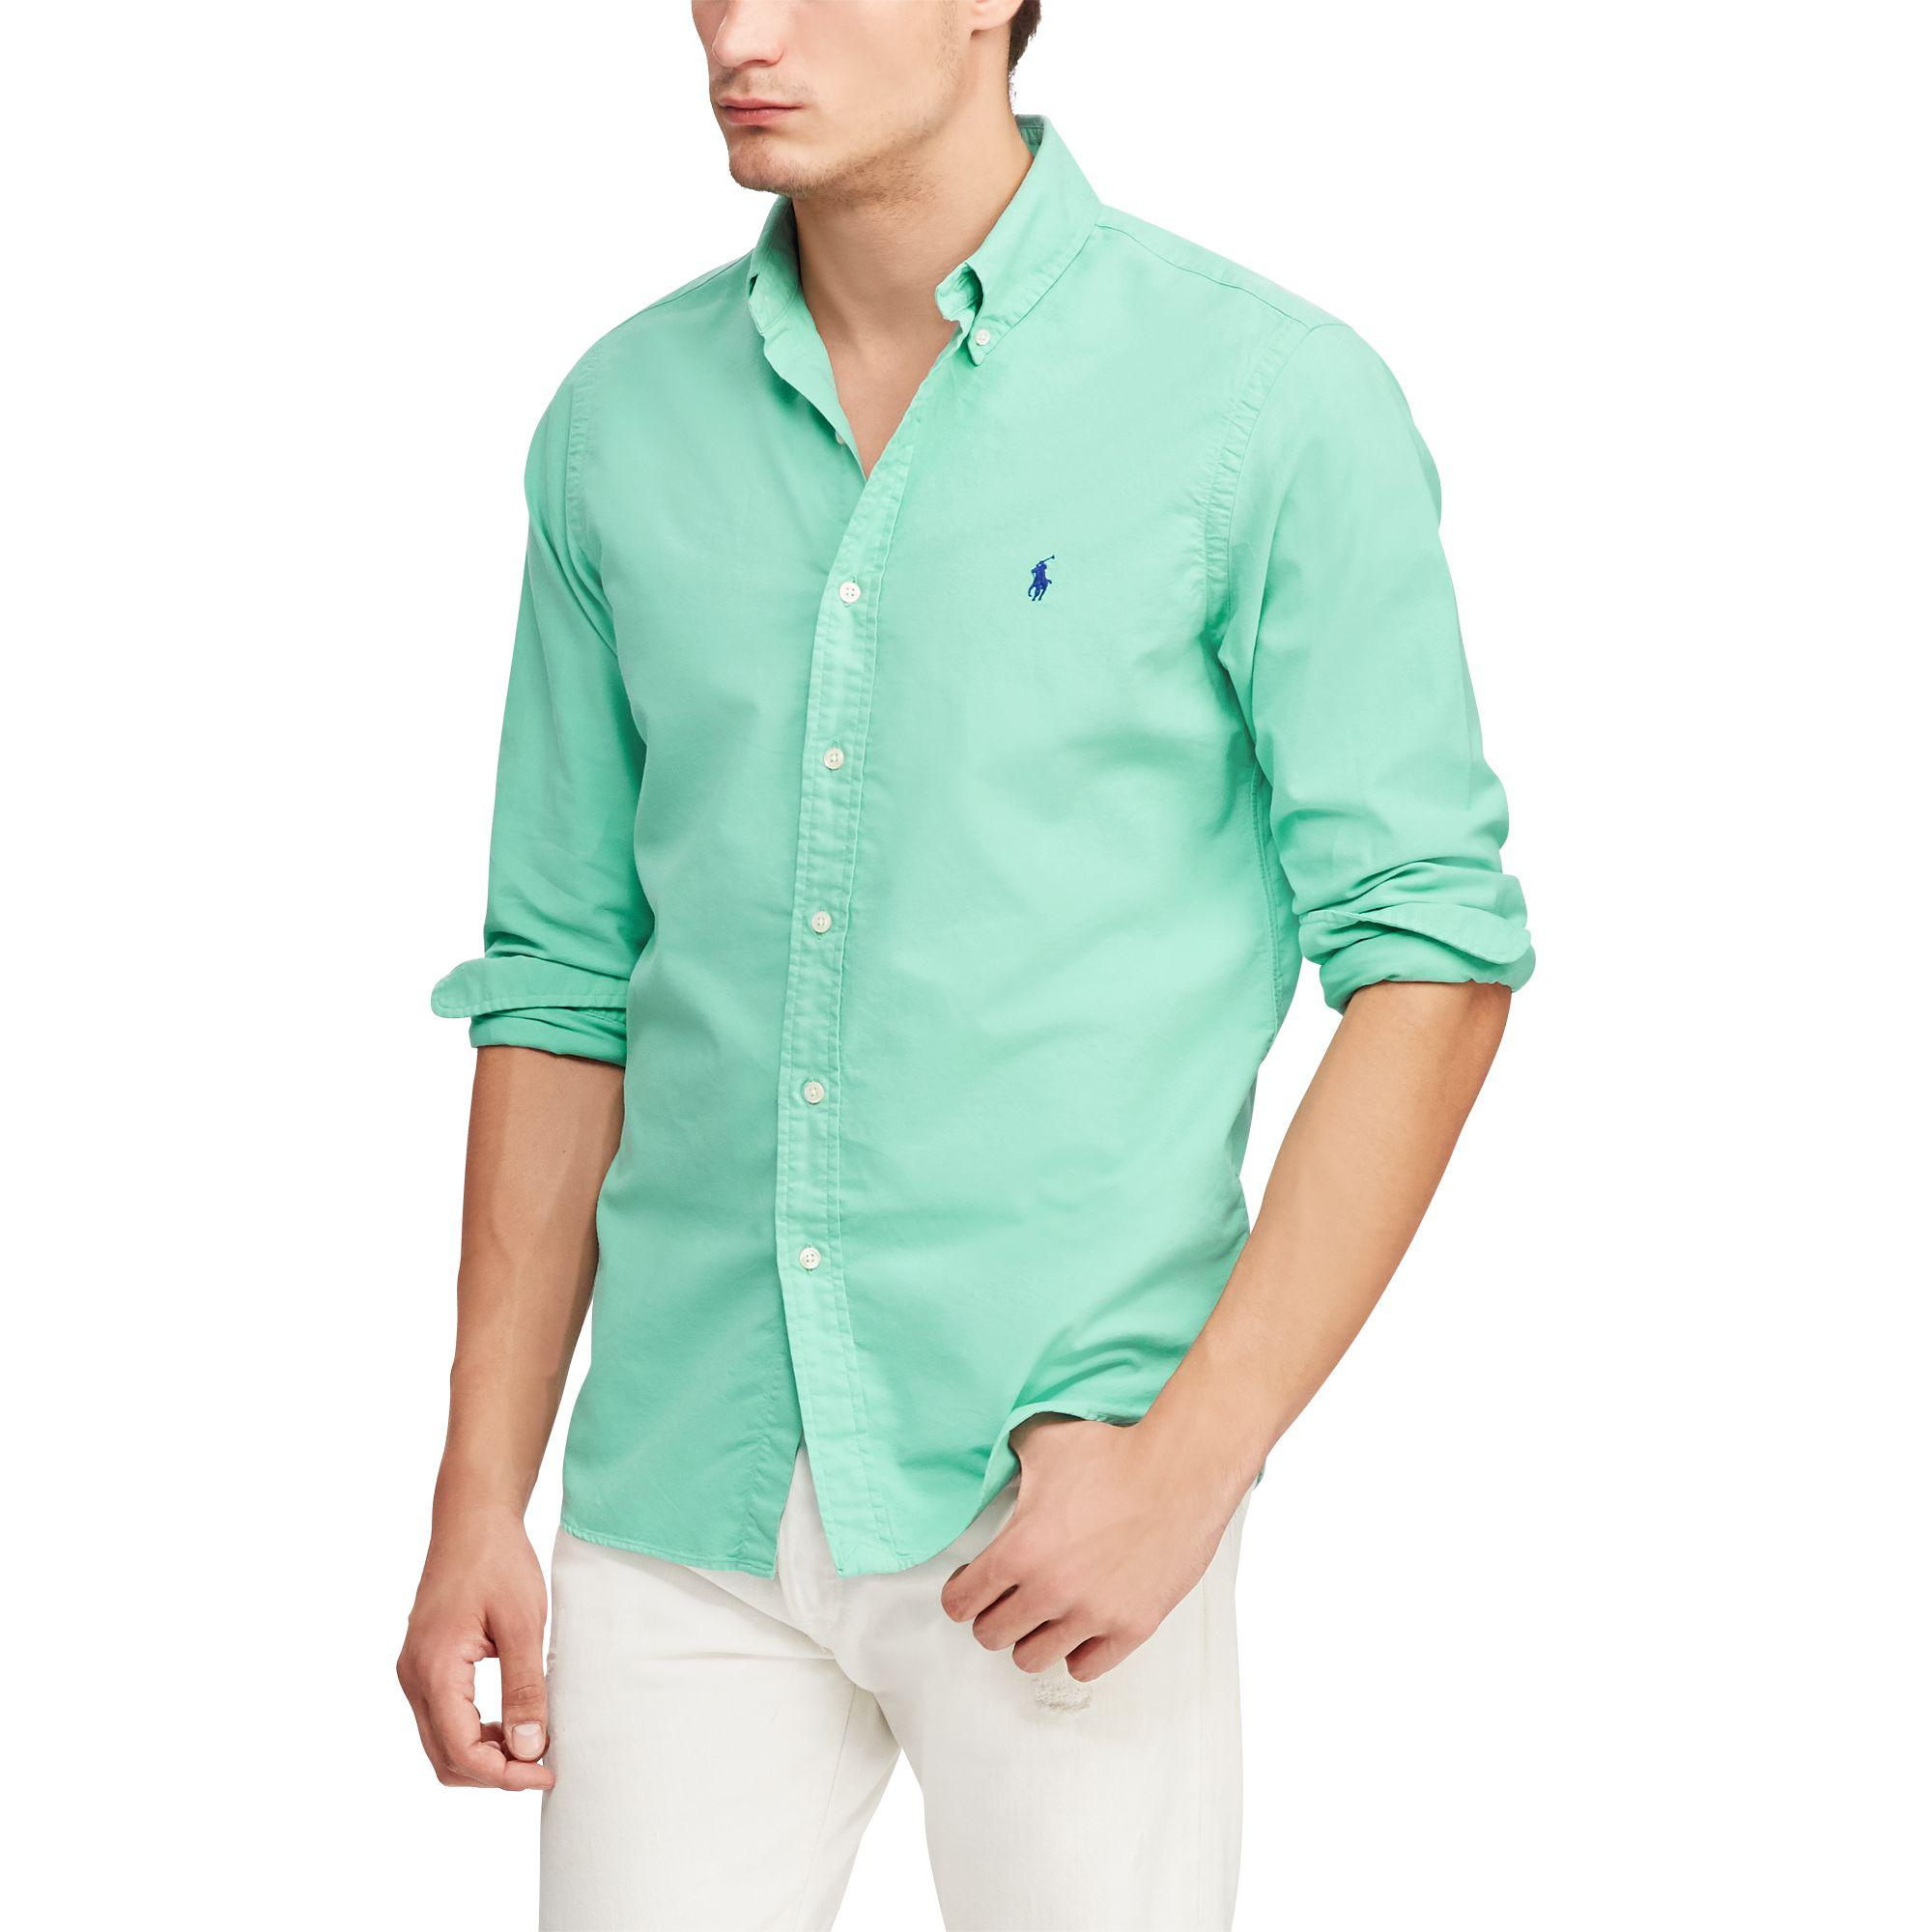 Polo Dyed Green For Men Ralph Shirt Garment Oxford Lauren Fl135uTJKc